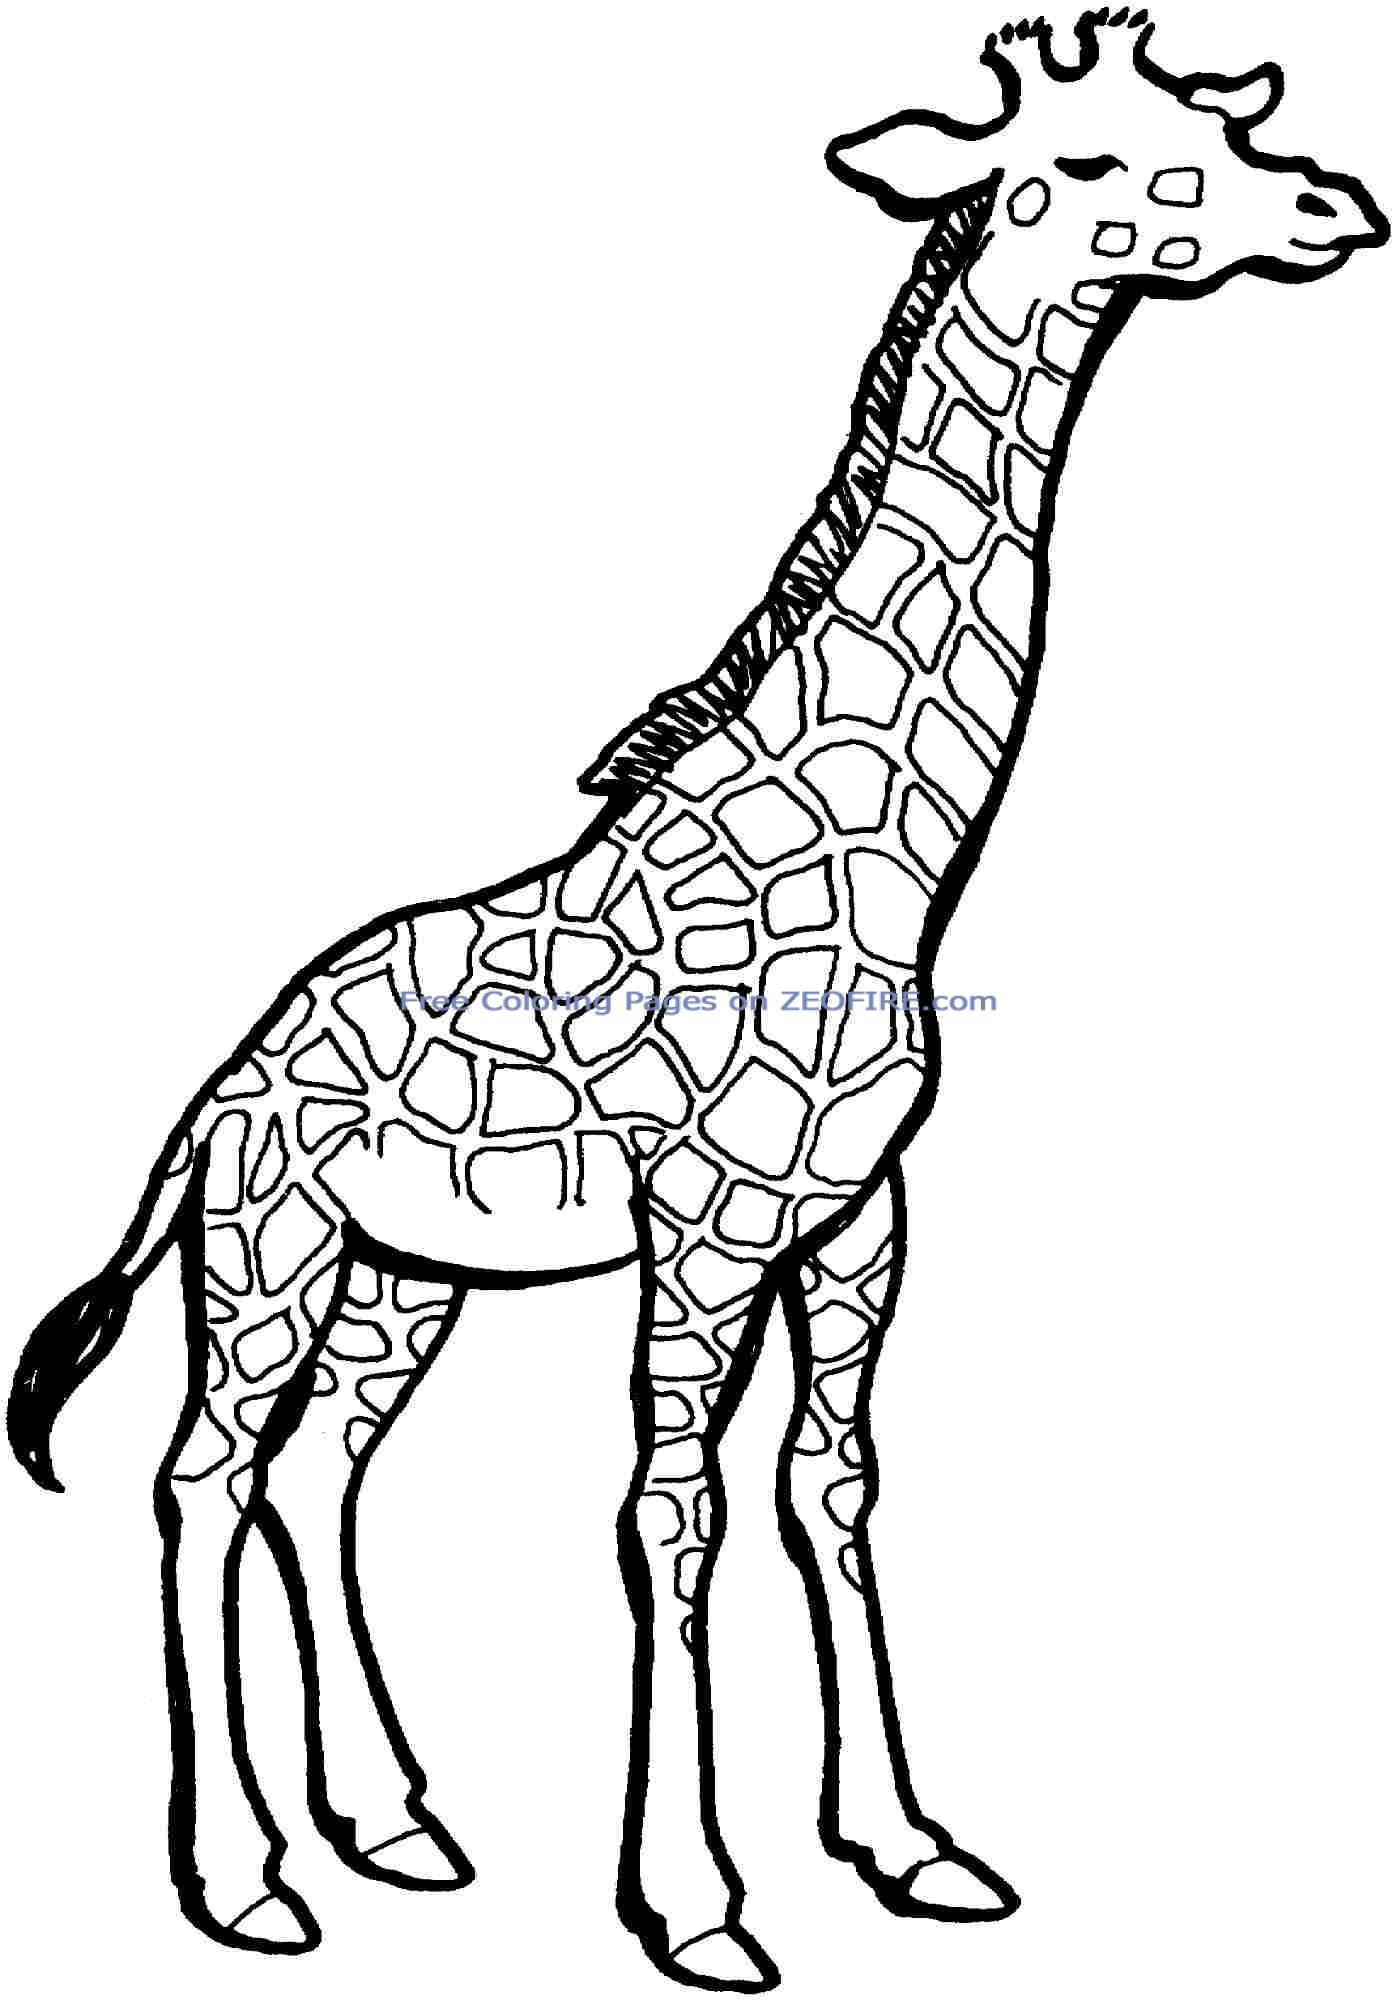 colouring pages of giraffe giraffe coloring pages free download on clipartmag pages colouring of giraffe